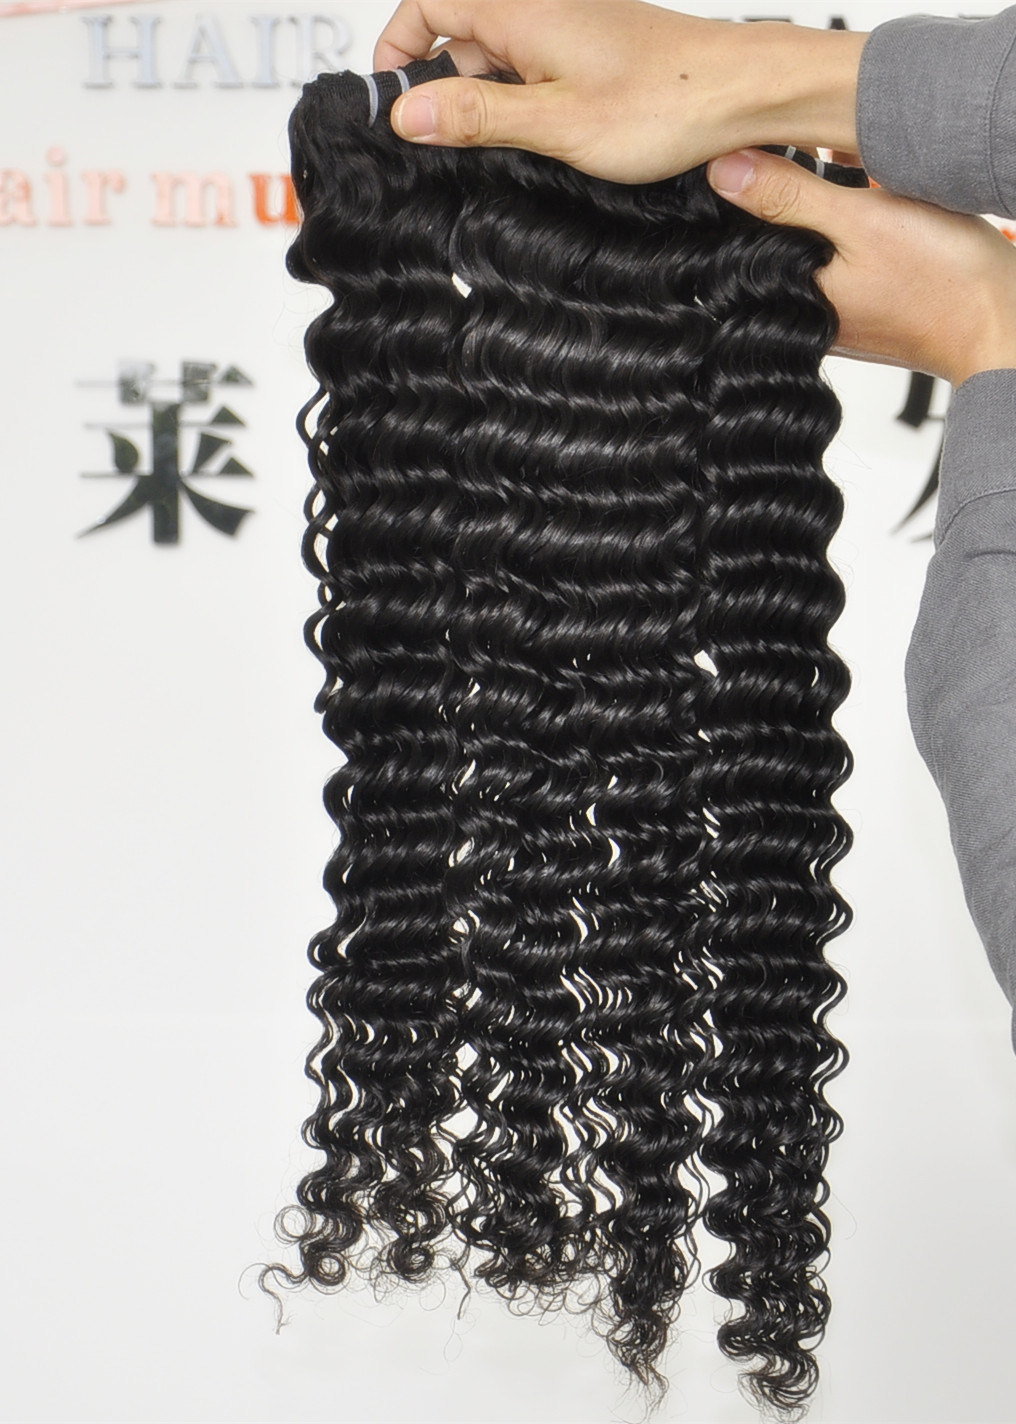 Unprocessed Labor Hair Extension 105g (+/-2g) /Bundle Natural Brazilian Virgin Hair Deep Curly 100% Human Hair Weaves Grade 8A